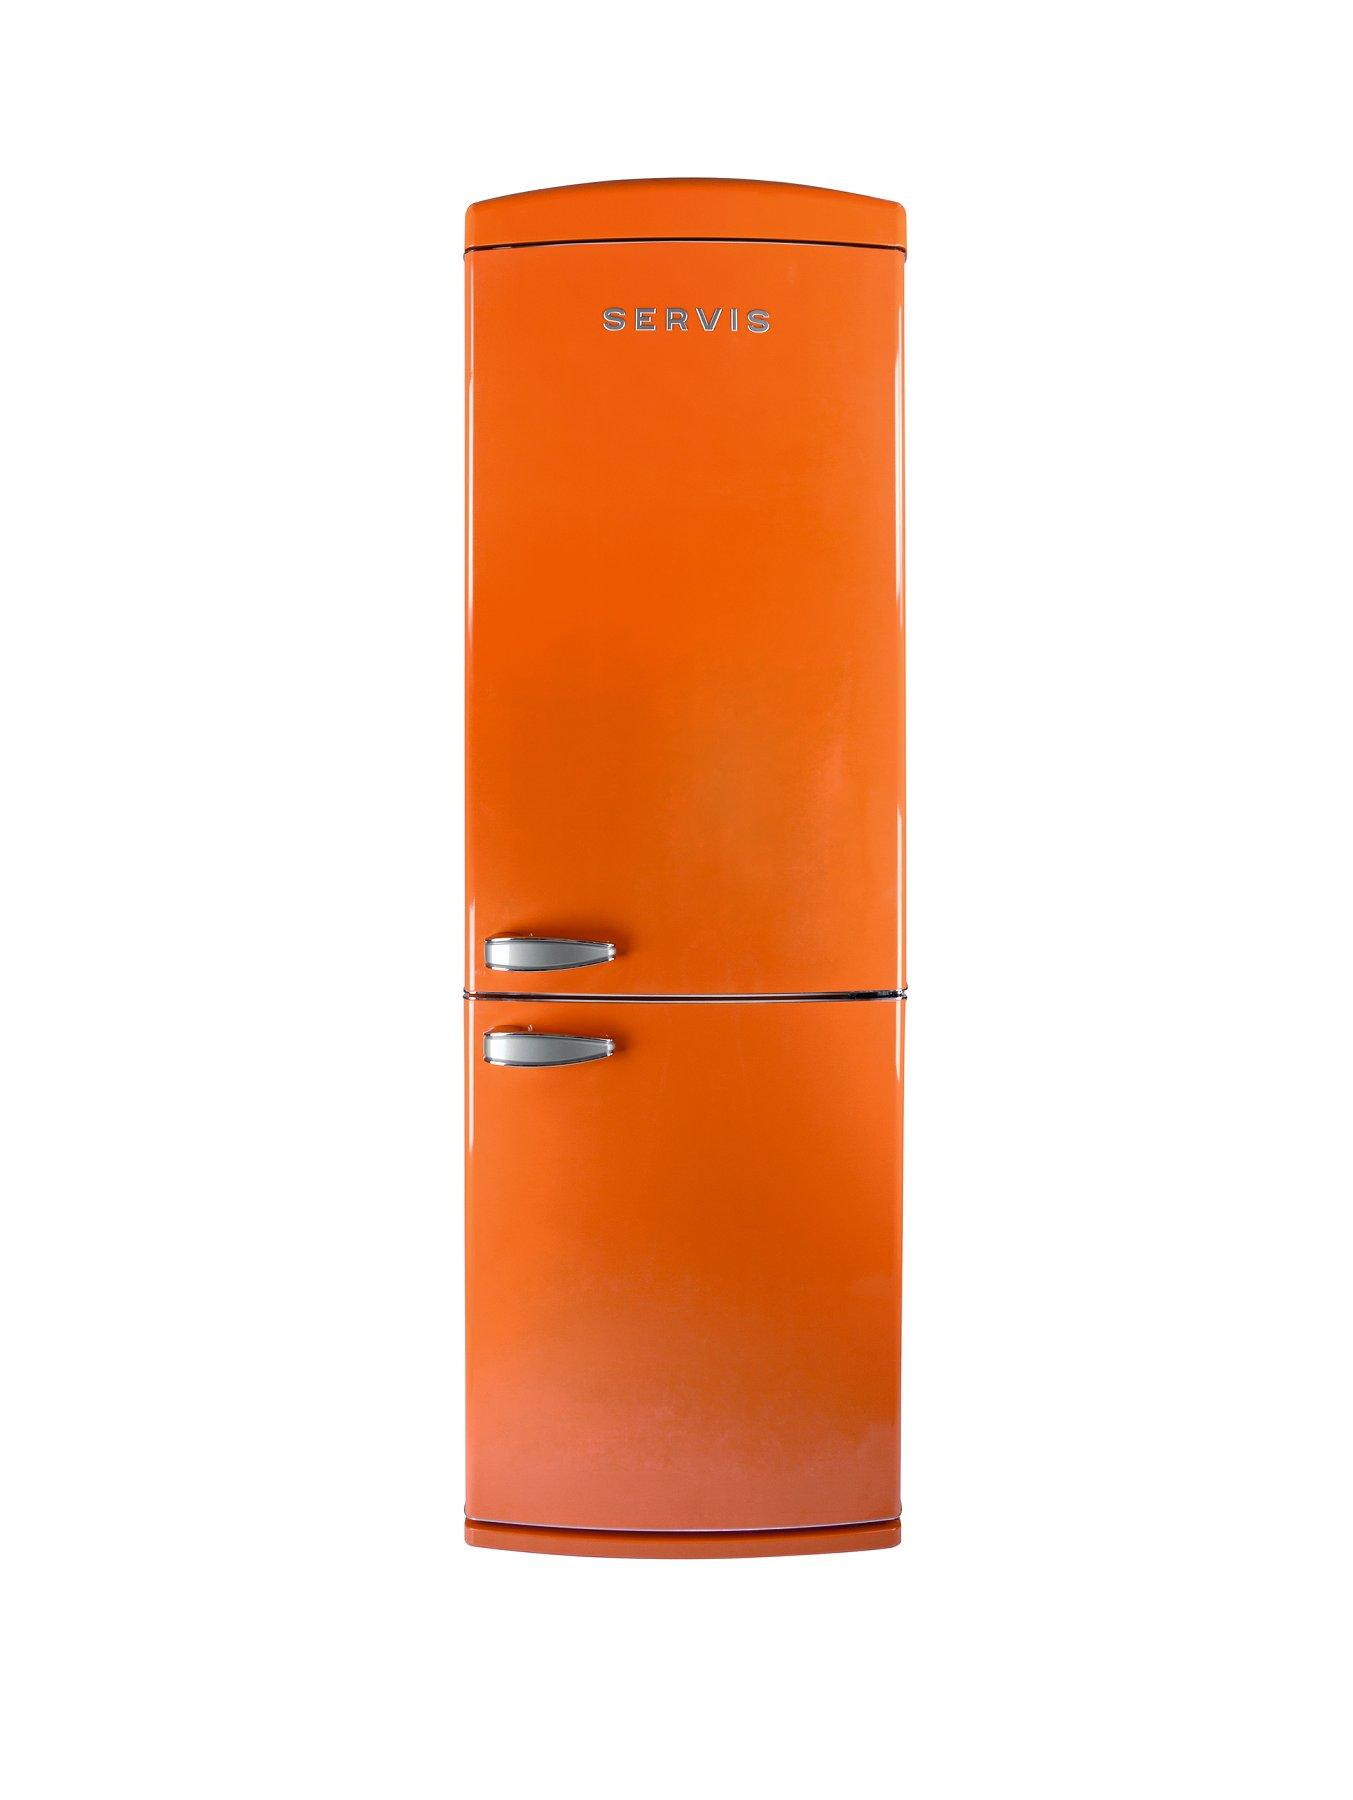 60cm No Frost Fridge Freezer  Orange Orange